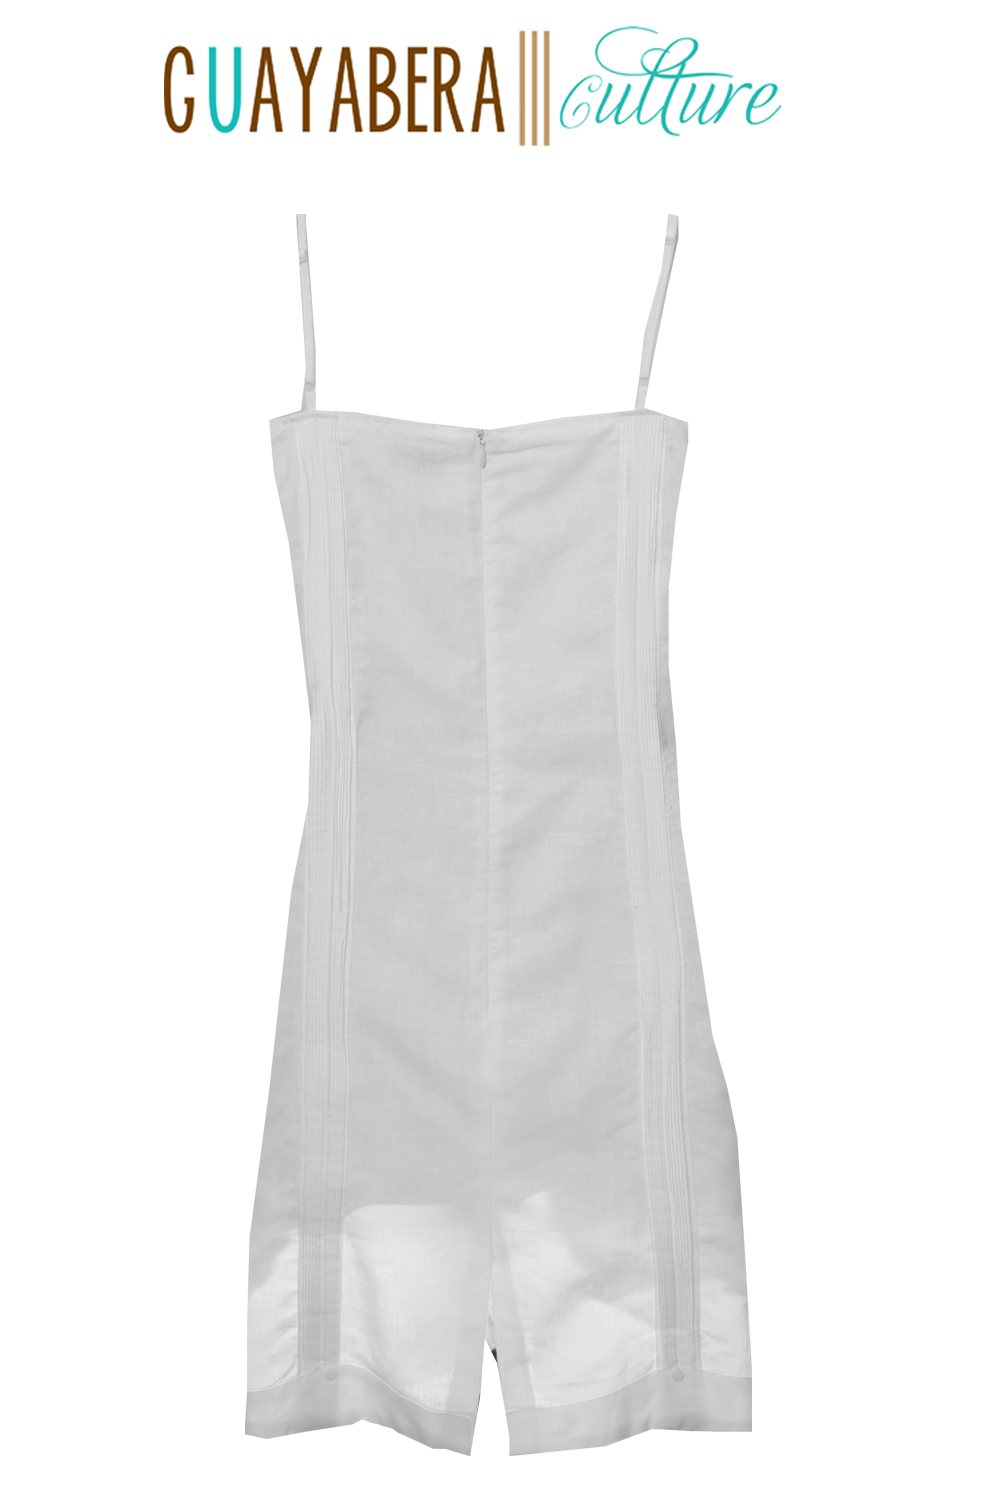 JMP Straps Female White Guayabera Dress Back 1